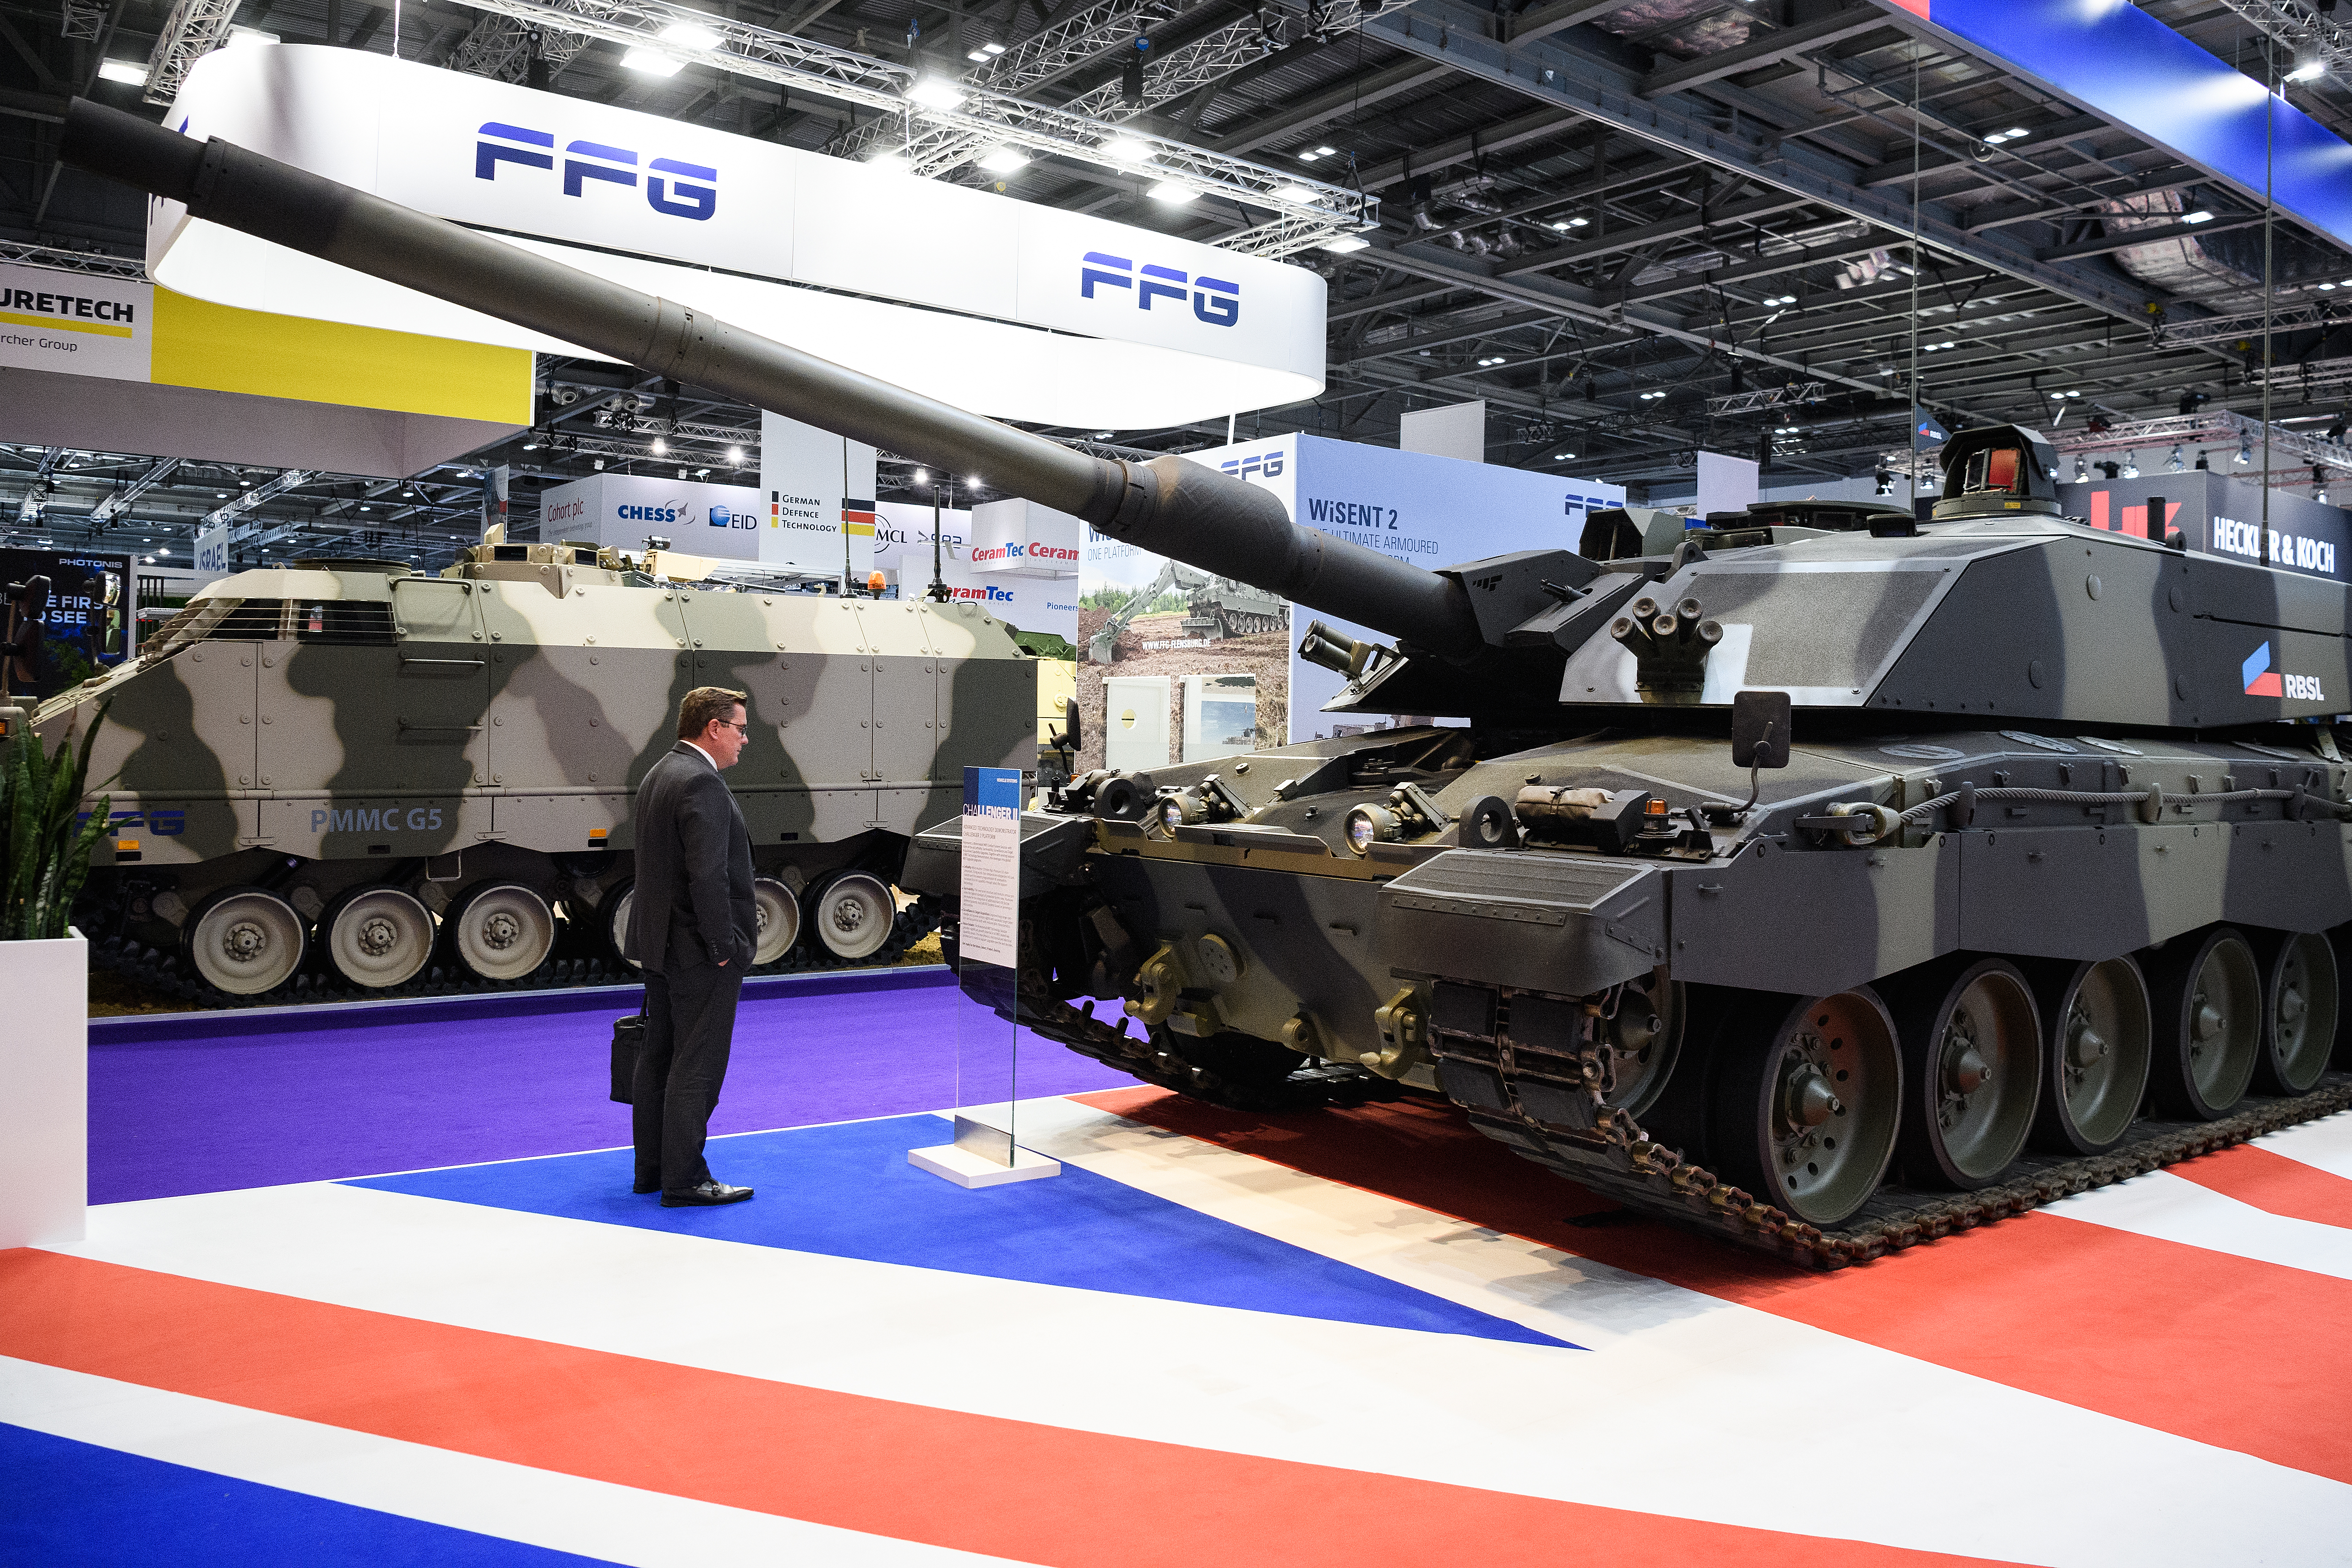 A delegate studies a Challenger II tank at DSEI. In London's Doclands area, the biennial event is the world's largest arms fair. (Leon Neal/Getty Images)